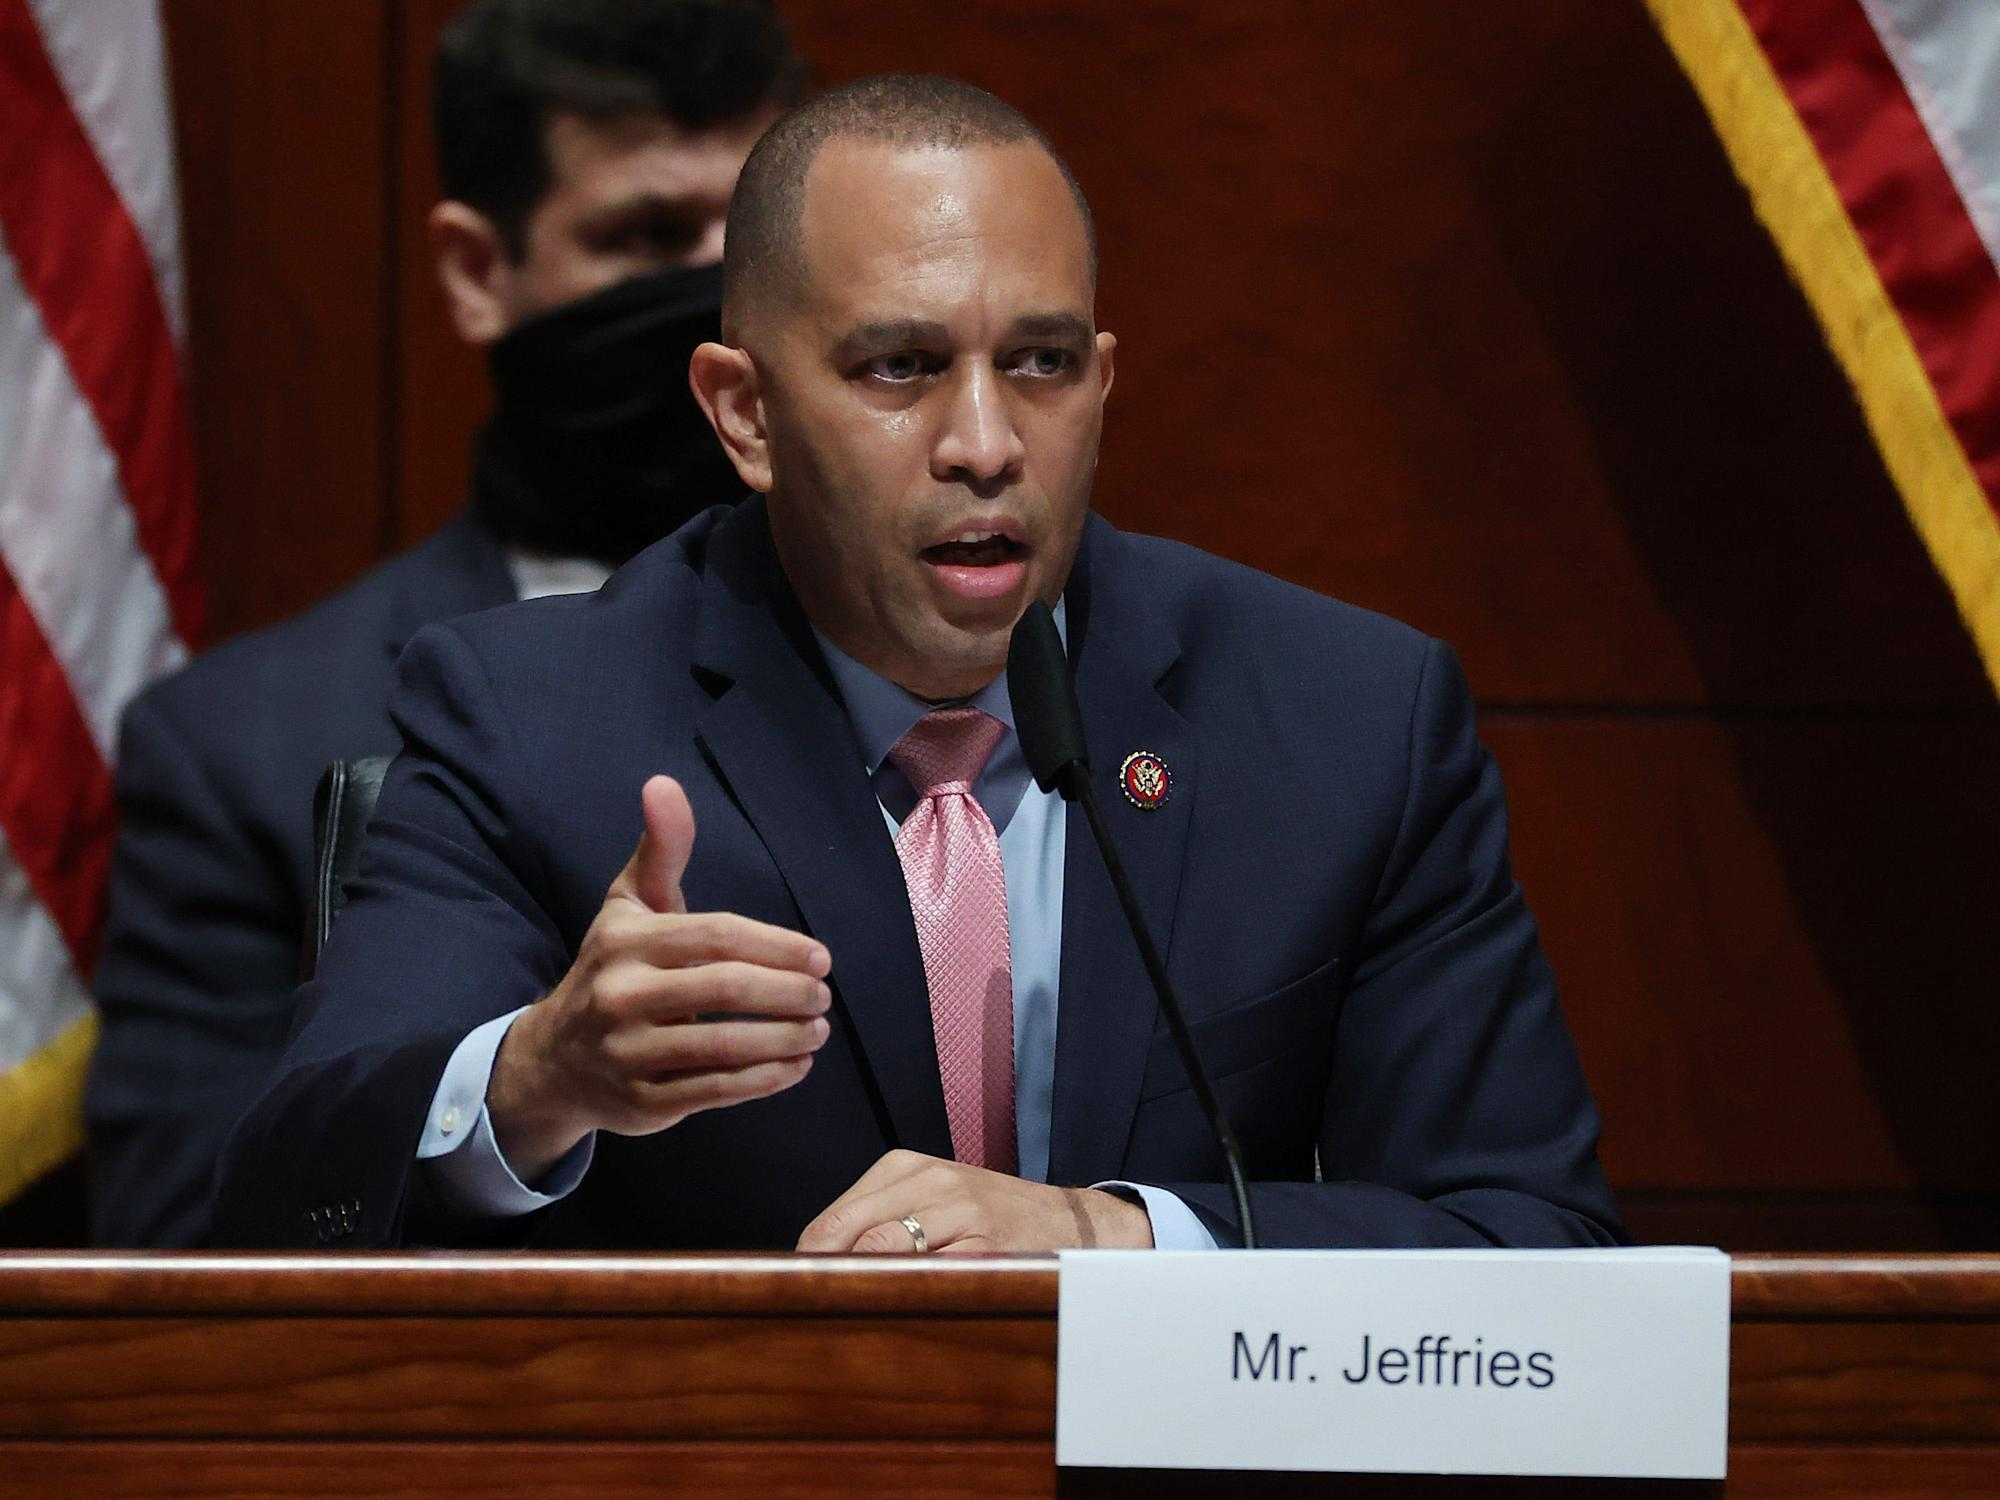 Rep. Jeffries slams newly elected Rep. Owens for voting to overturn the 2020 election results